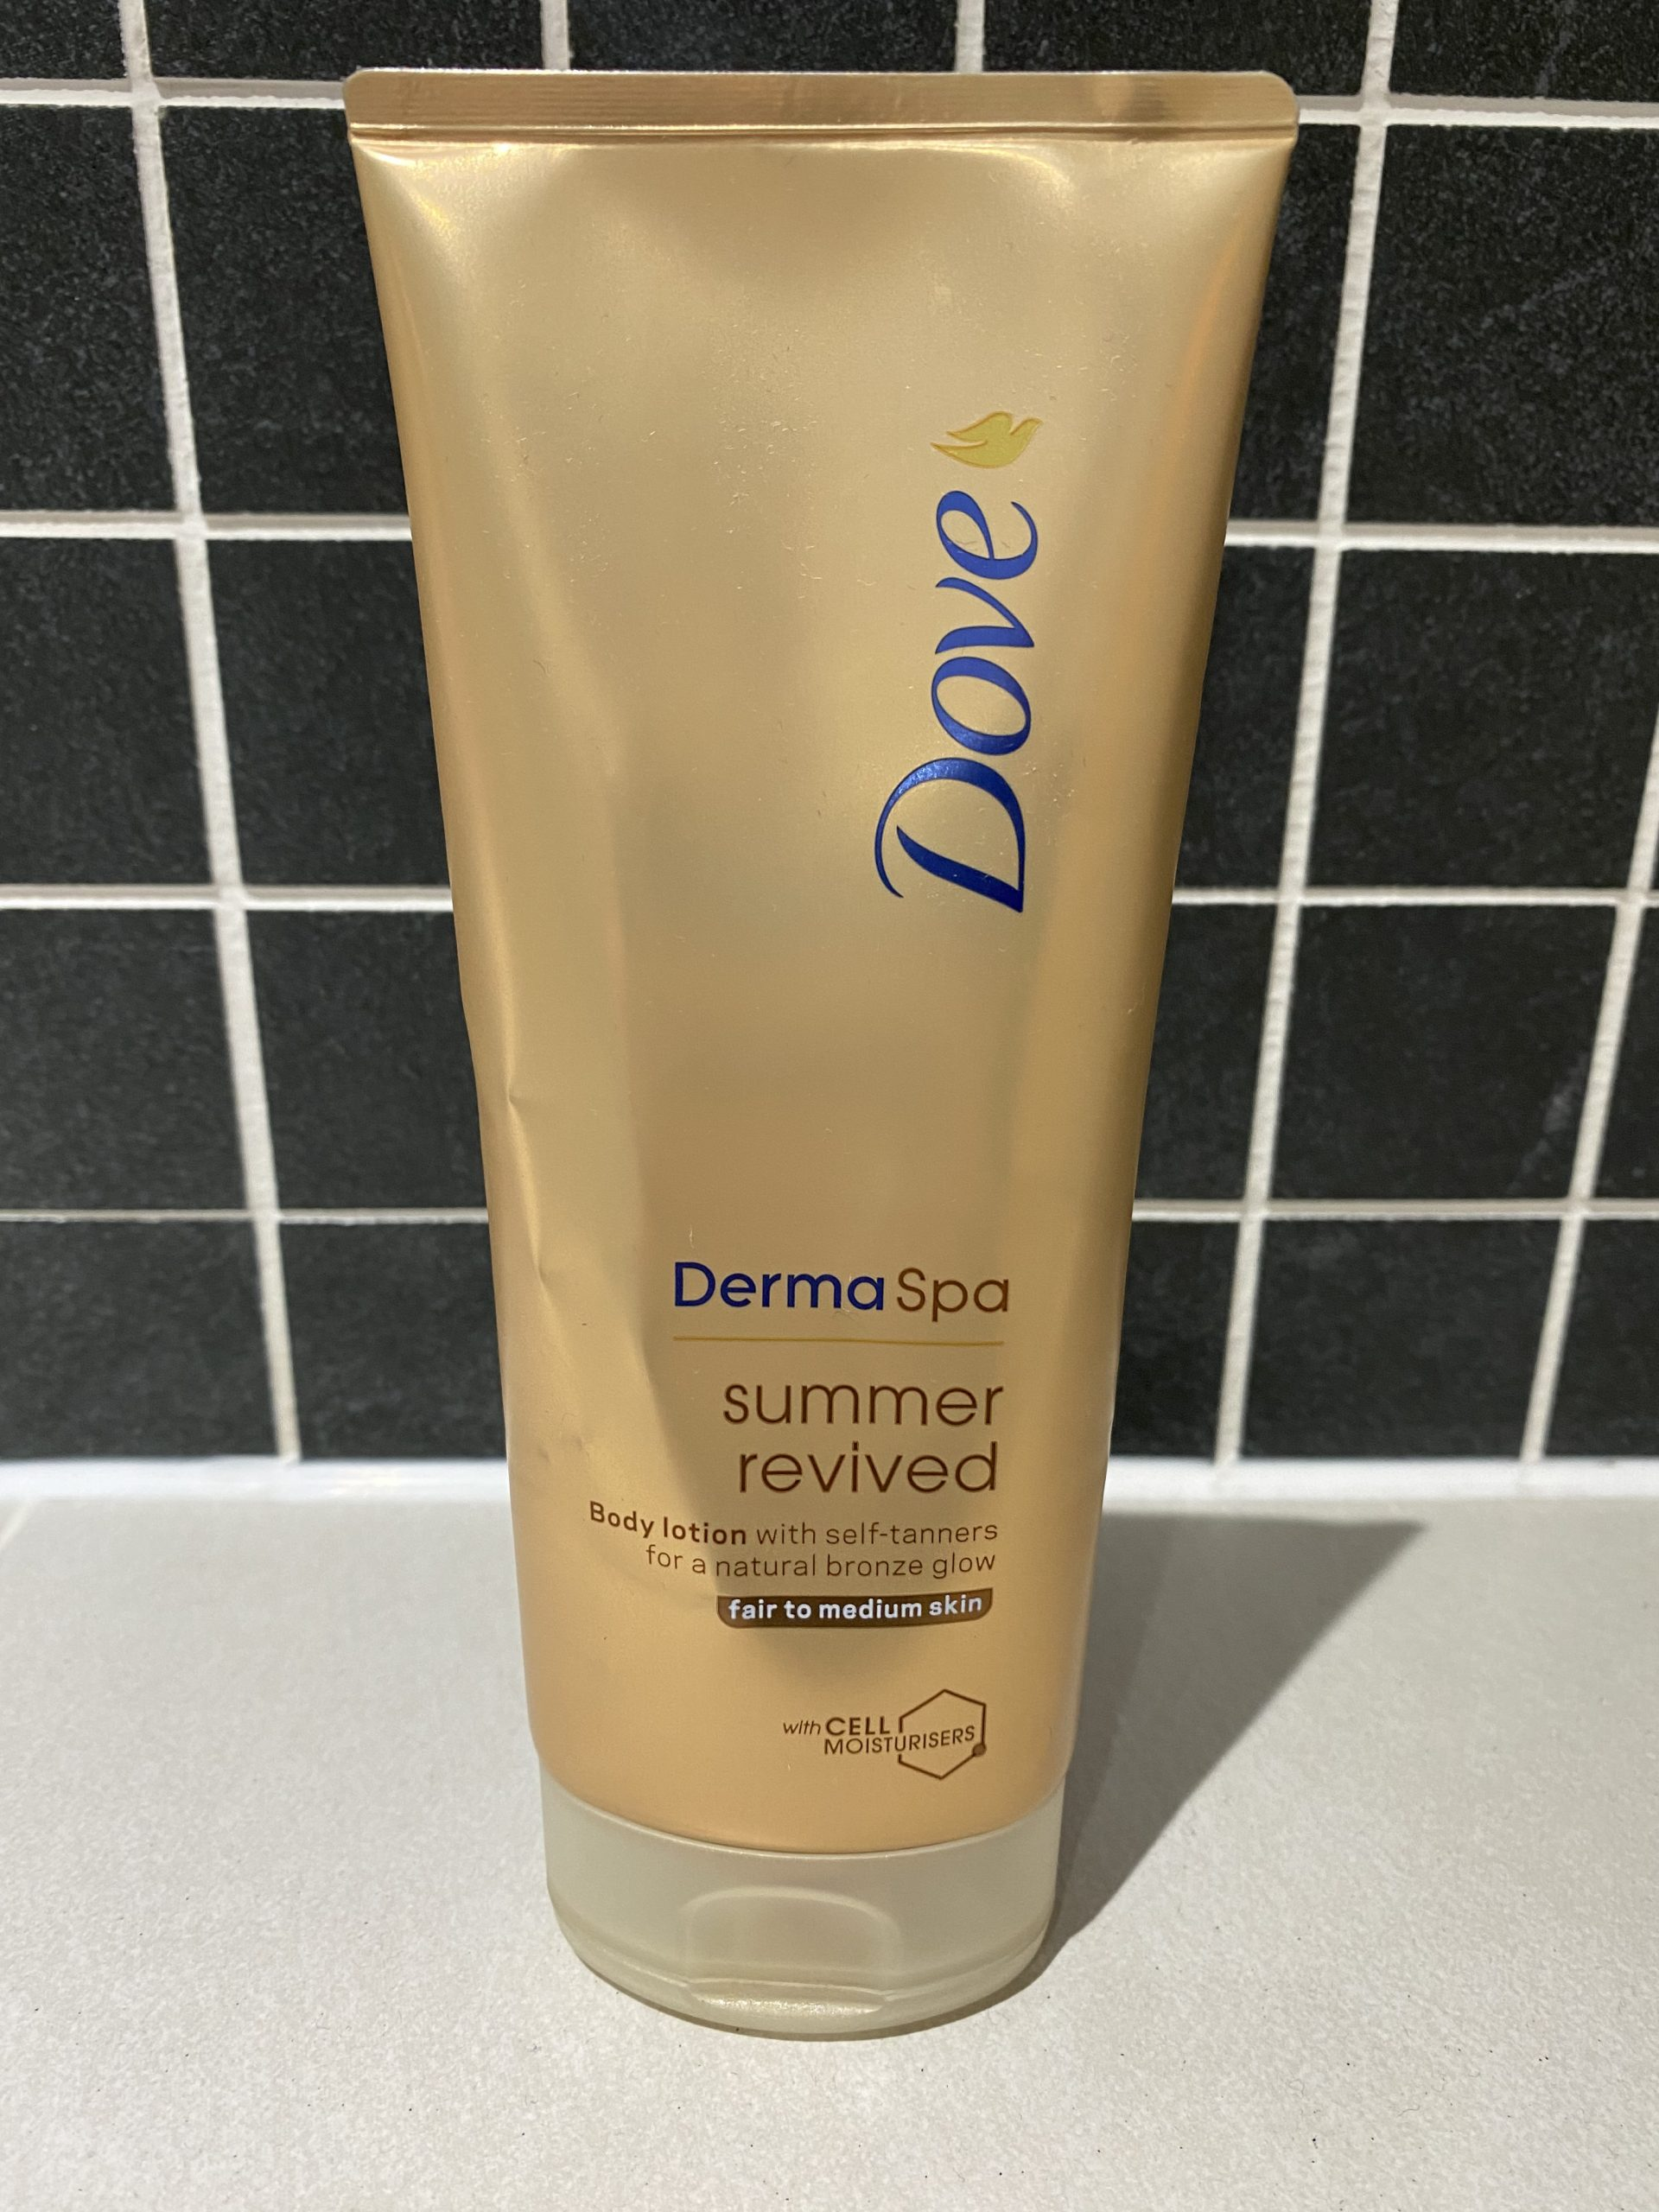 Dove DermaSpa Summer Revived Skin Gradual Fake Tan Review graphic